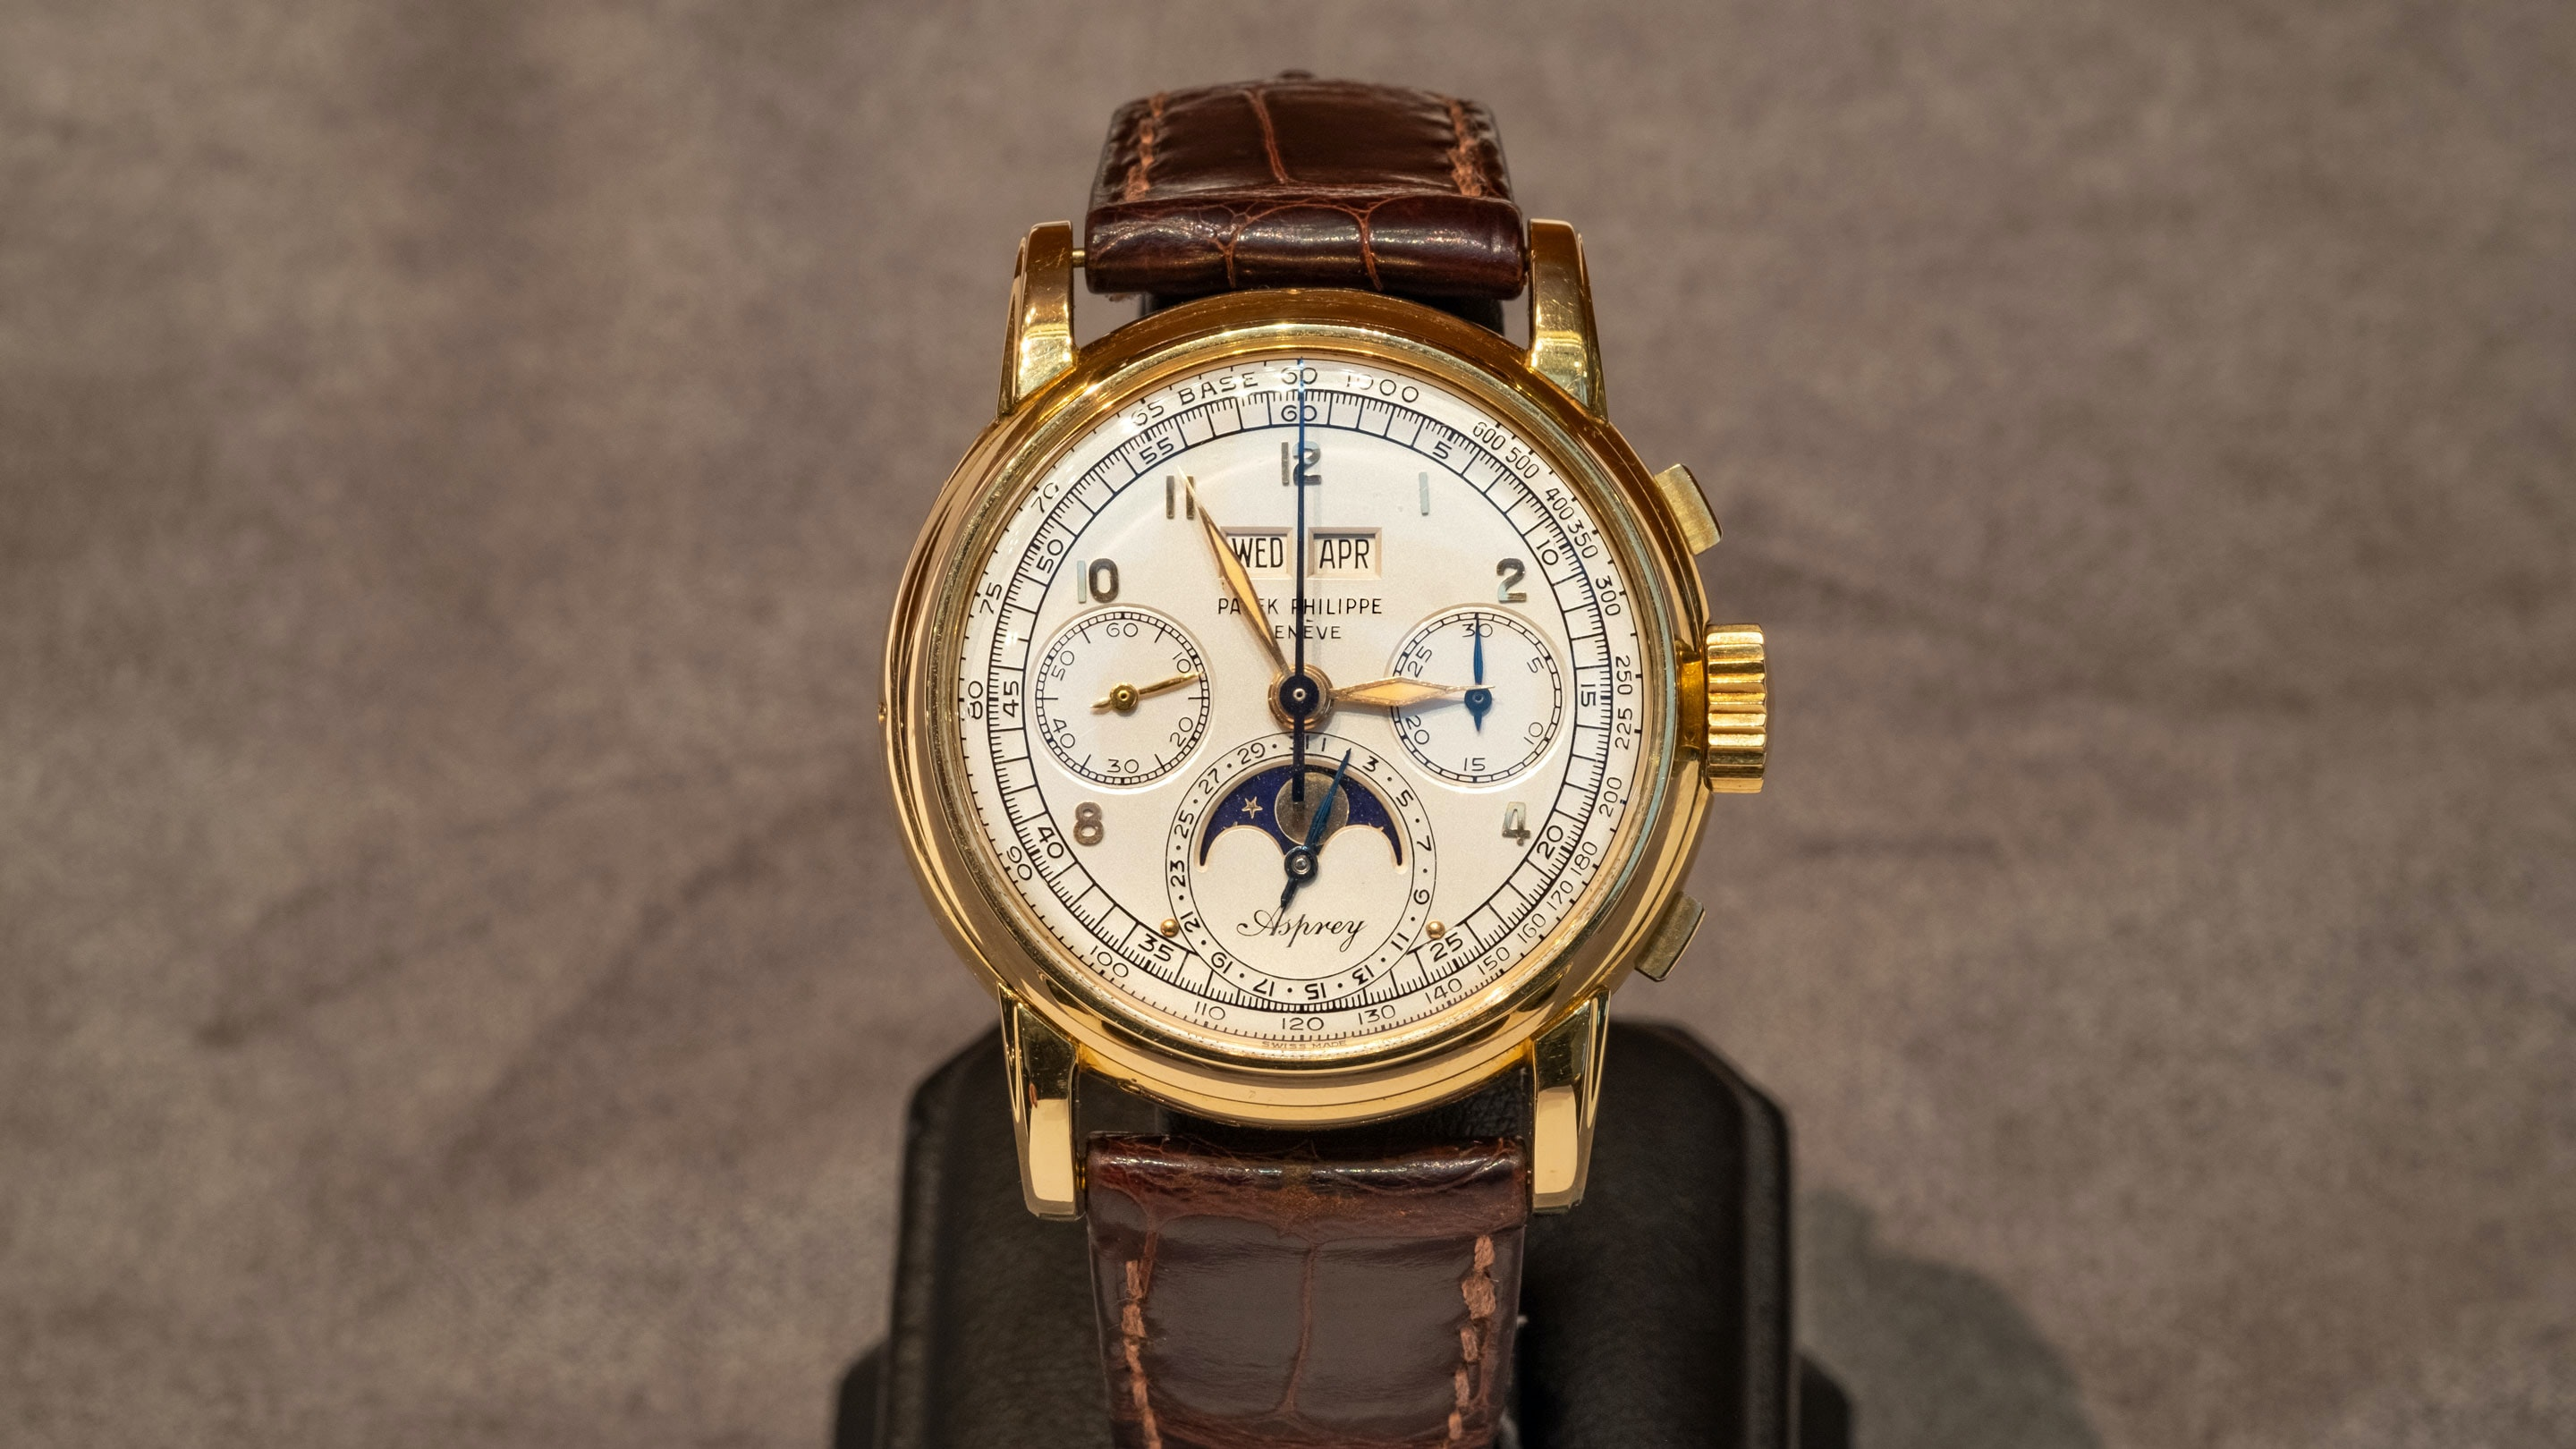 Auto Draft  Breaking News: The Only Known Asprey-Signed Patek Philippe Ref. 2499 Sells For $3.88 Million At Sotheby's, Setting A New World Record sothebys H